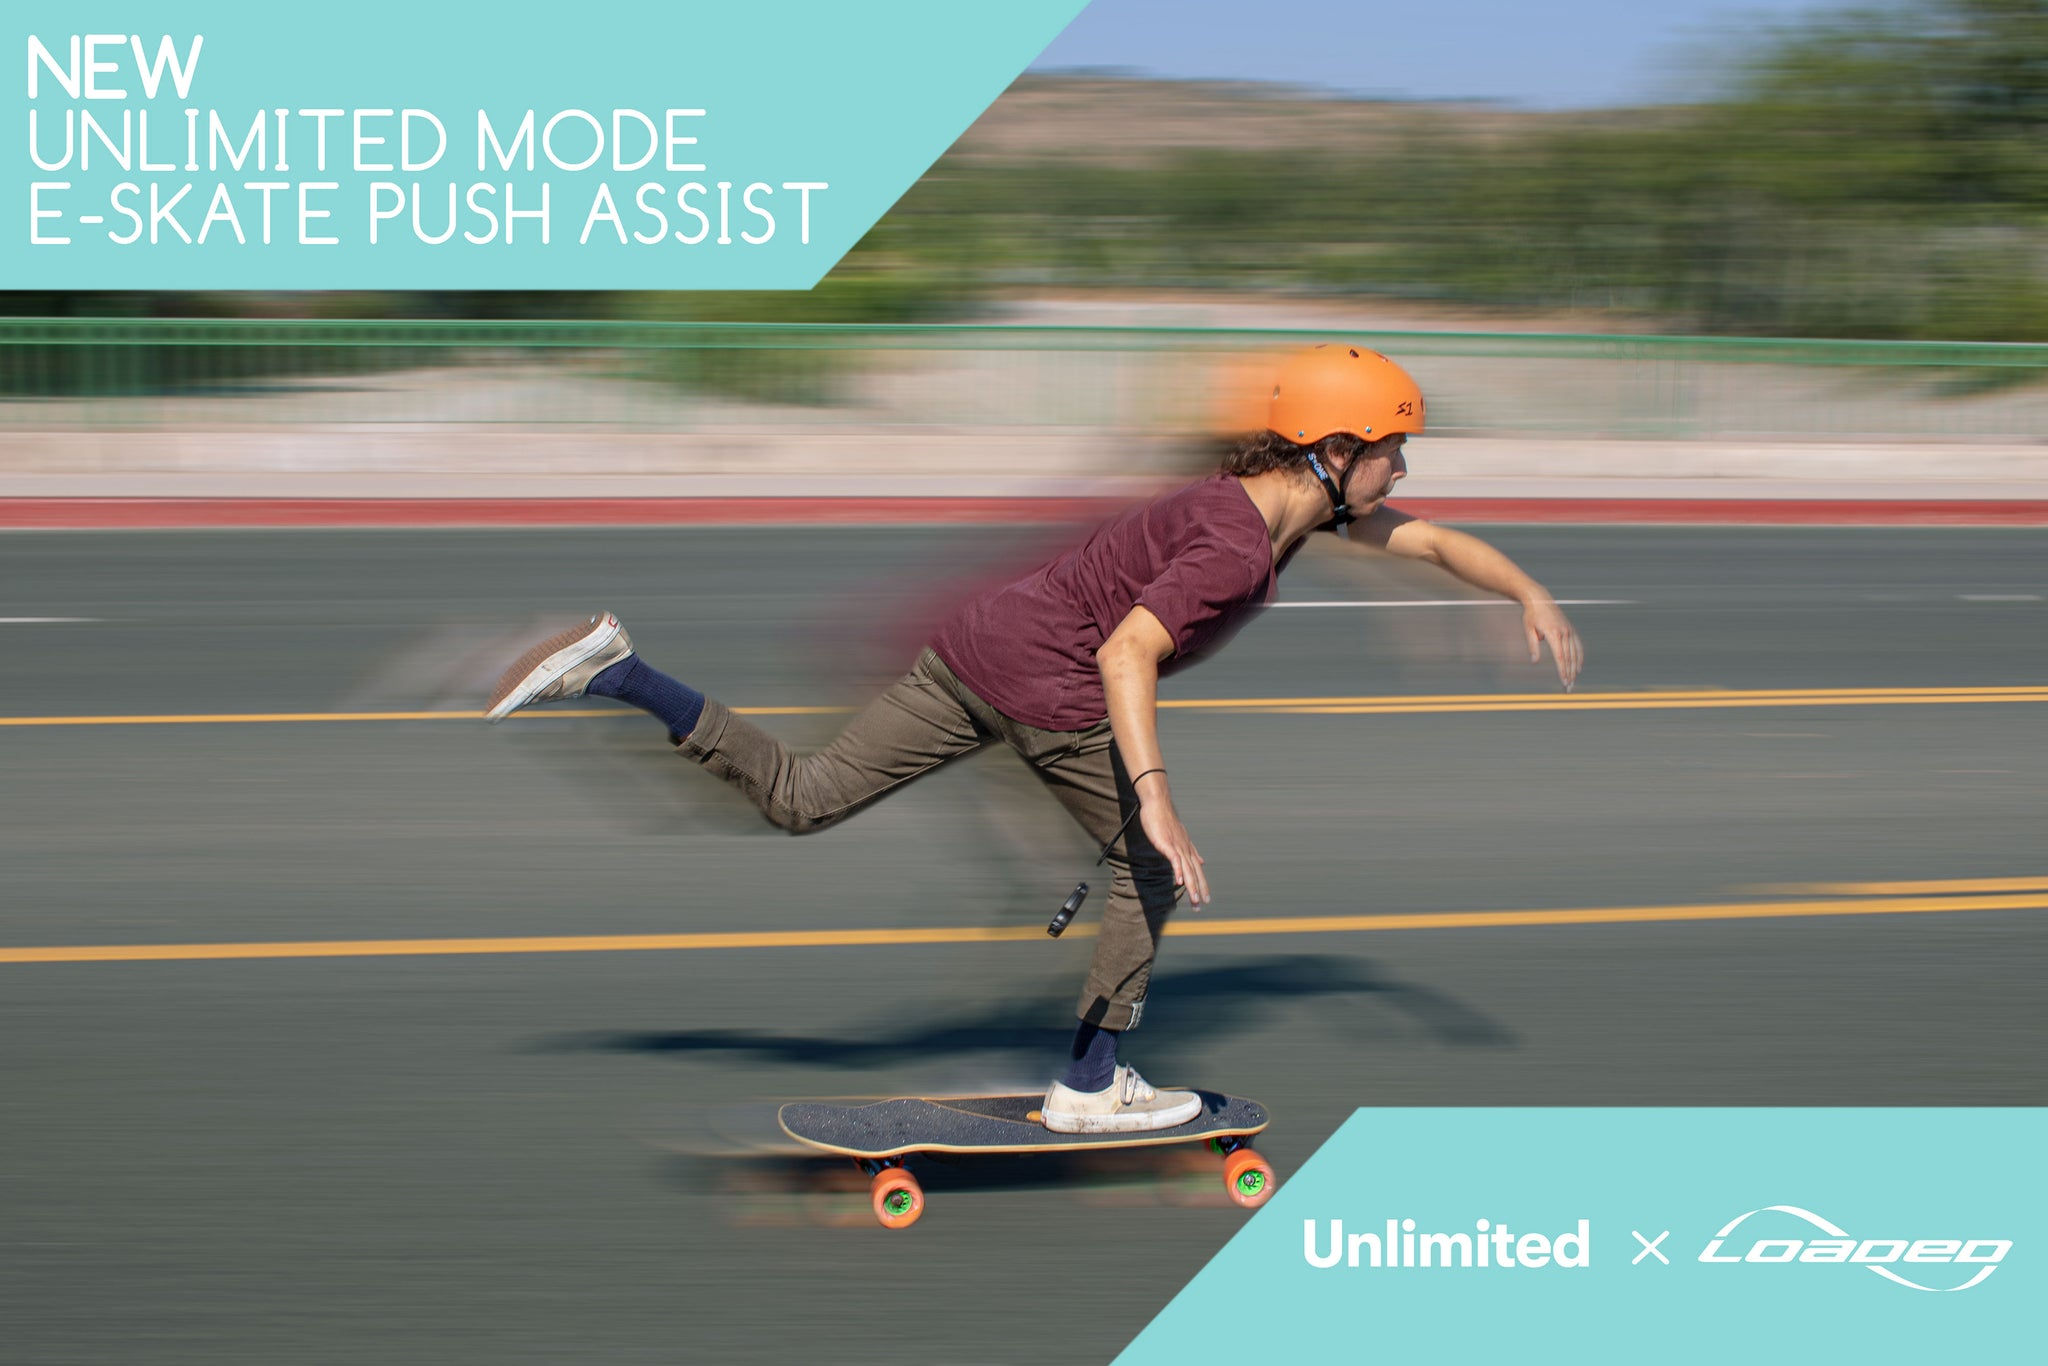 Unlimited Mode: E-Skate Push Assist